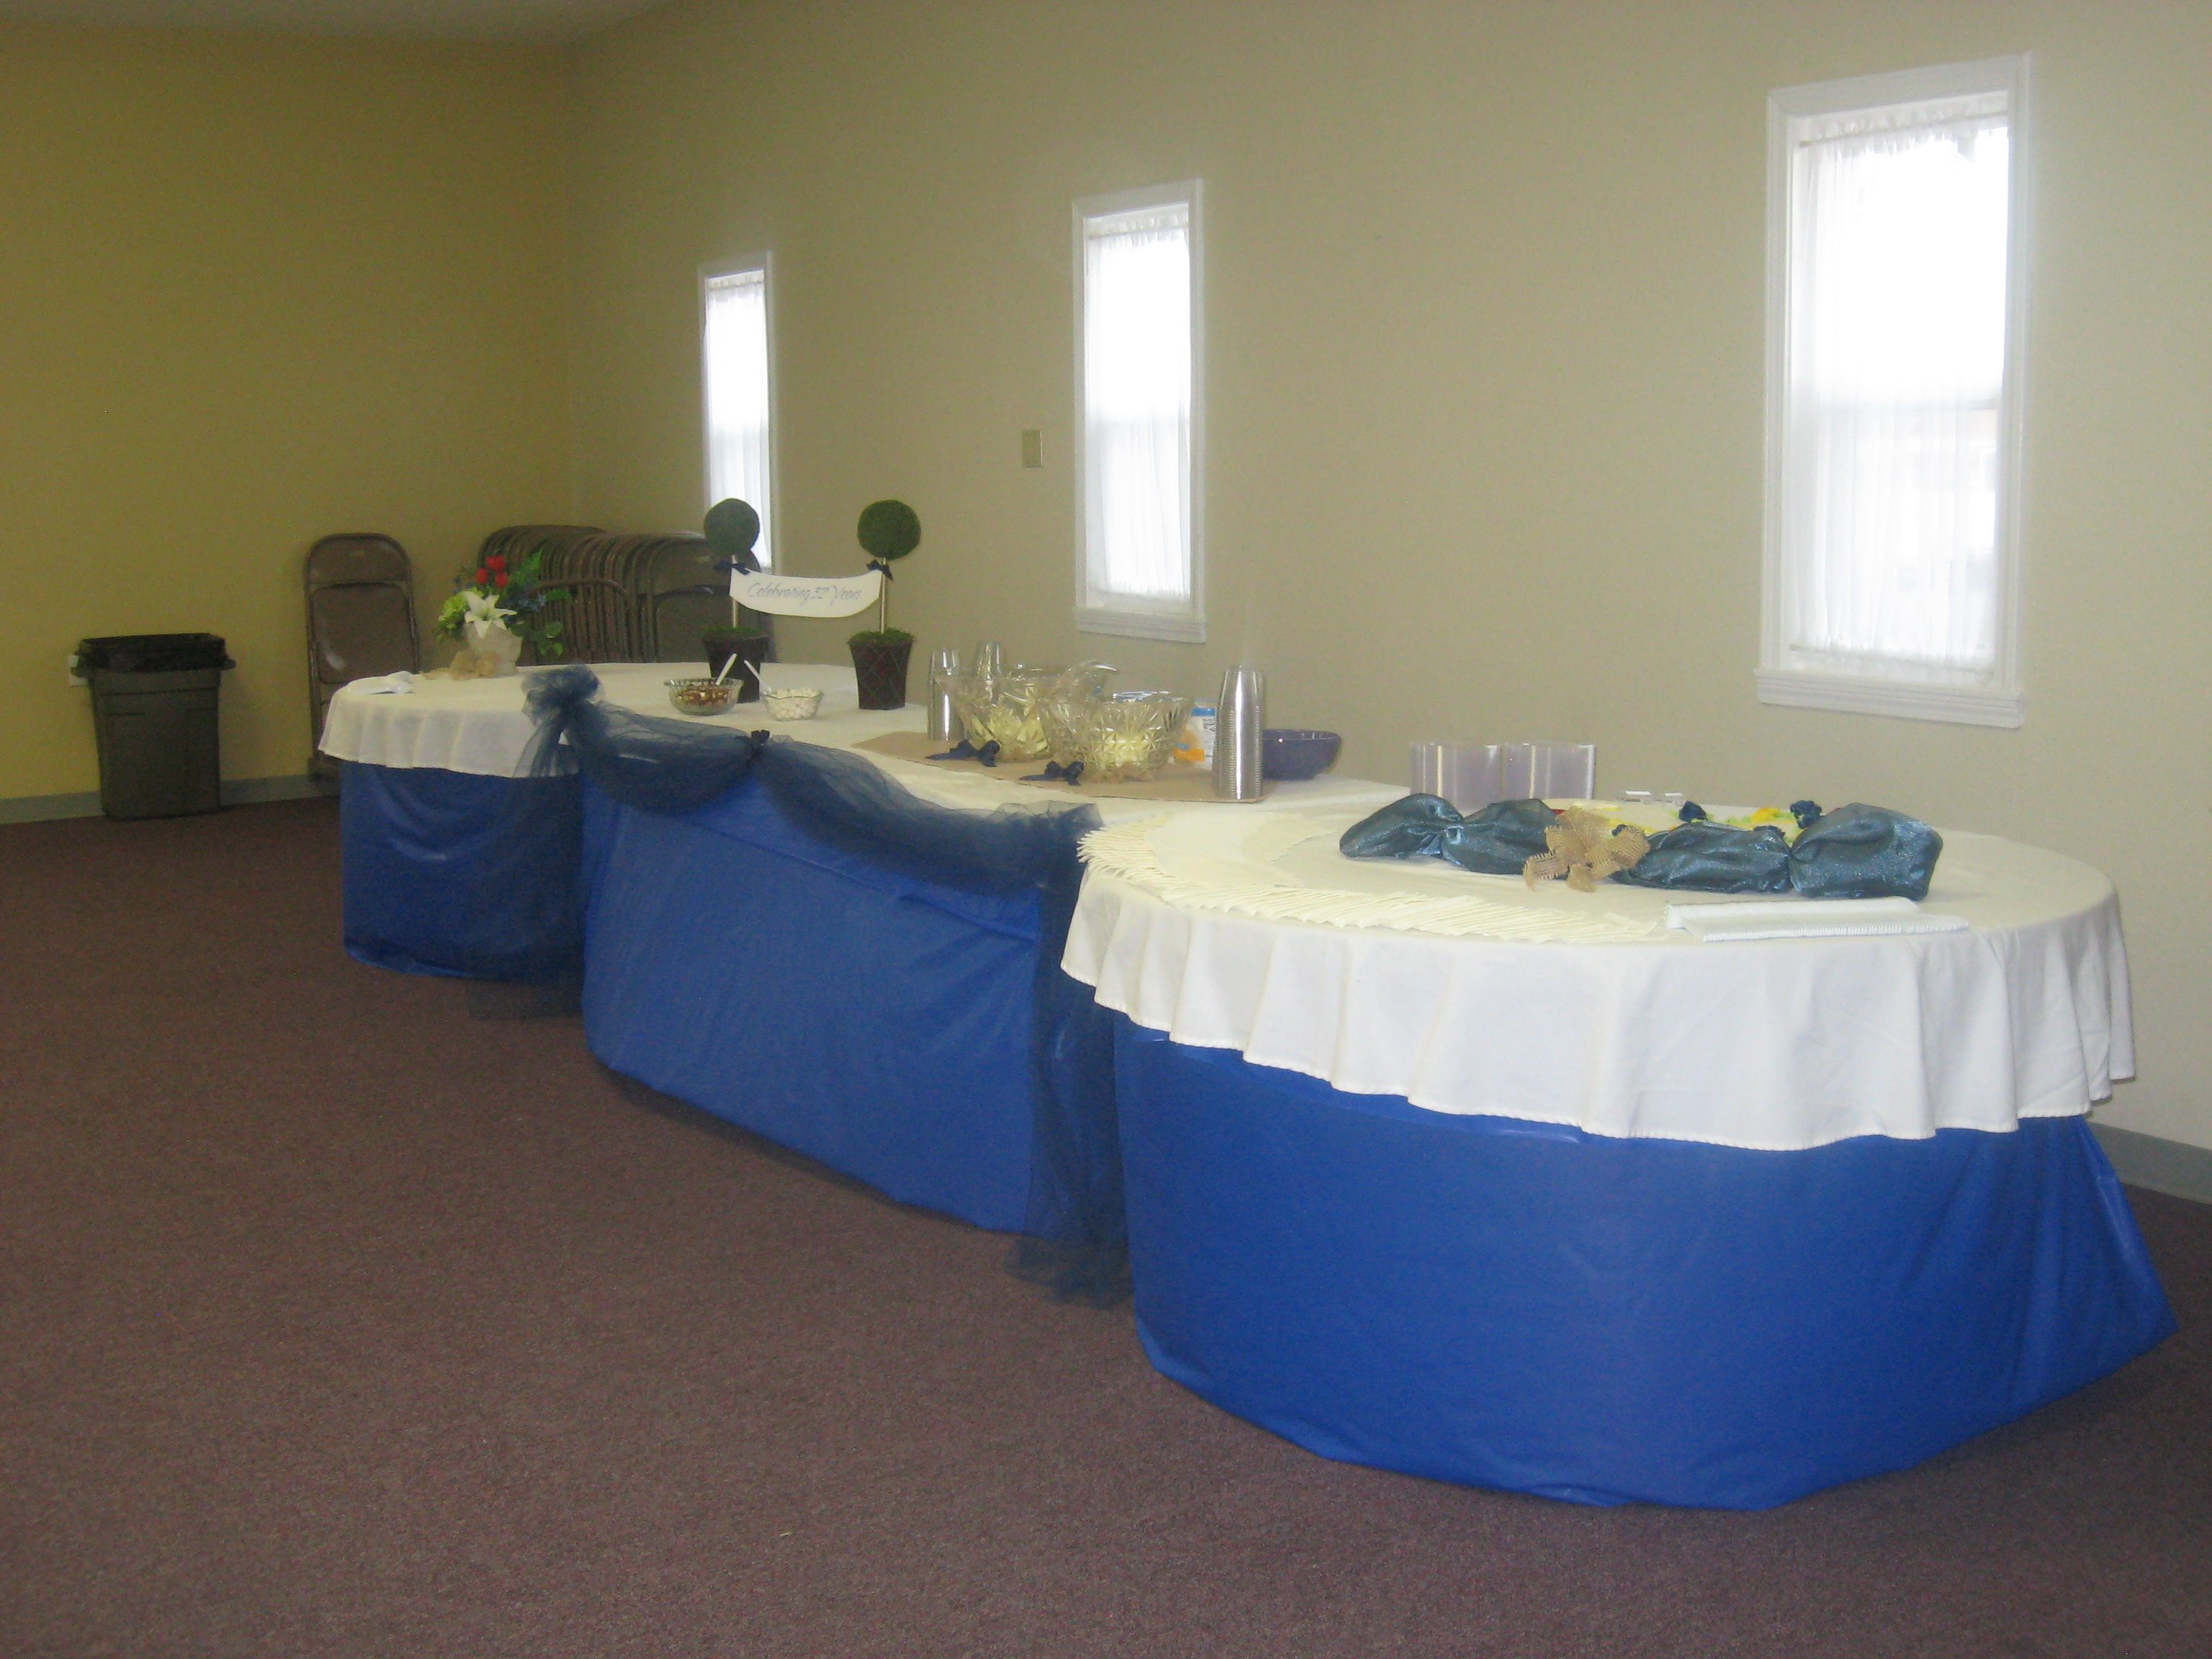 Church Anniversary Reception 2 Round Tables And A Rectangular